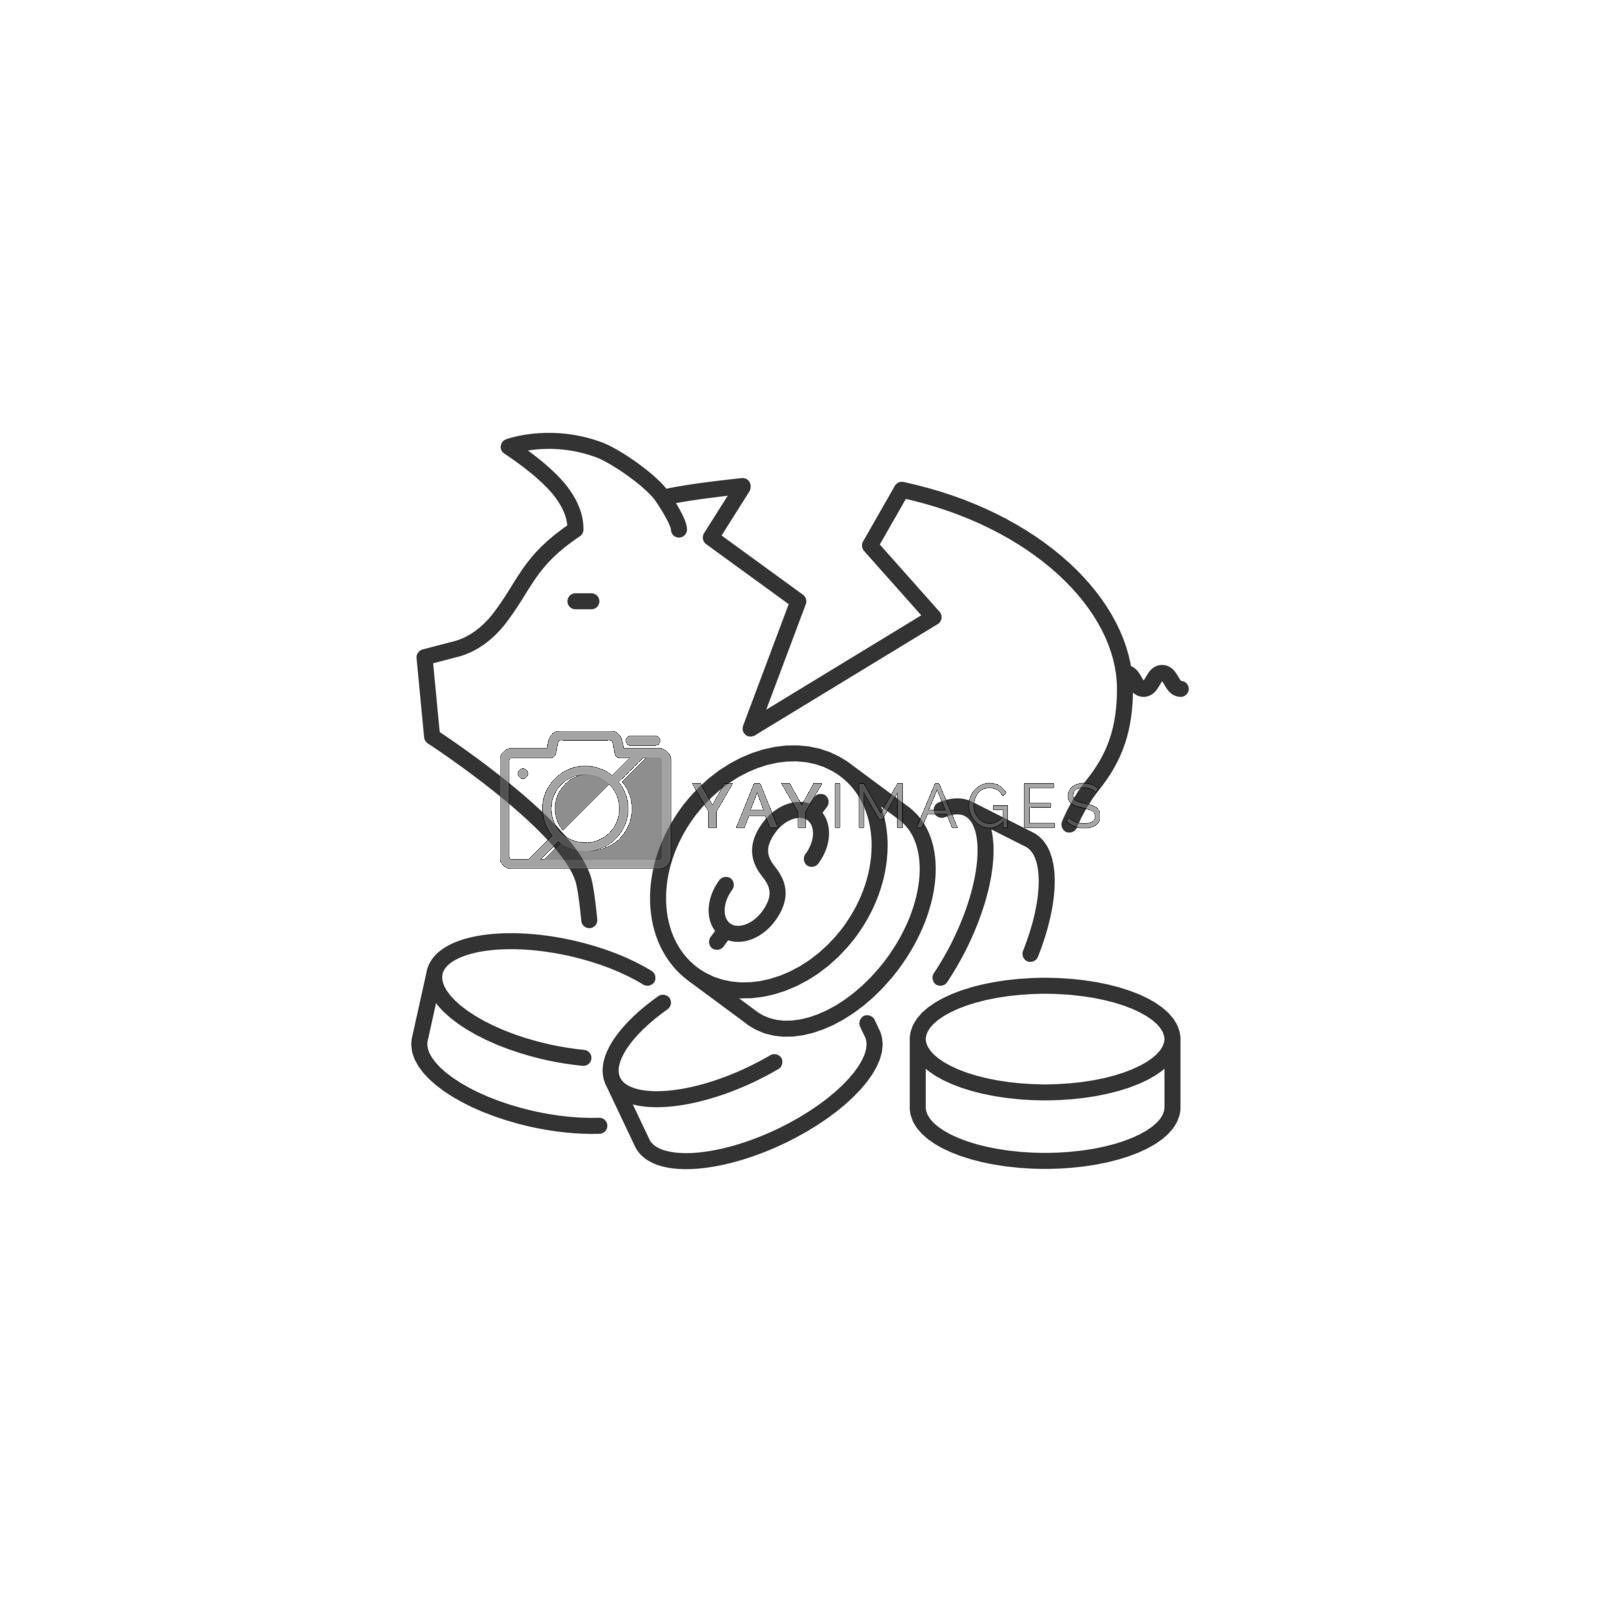 Broken Piggy Bank Related Vector Line Icon. Sign Isolated on the White Background. Editable Stroke EPS file. Vector illustration.